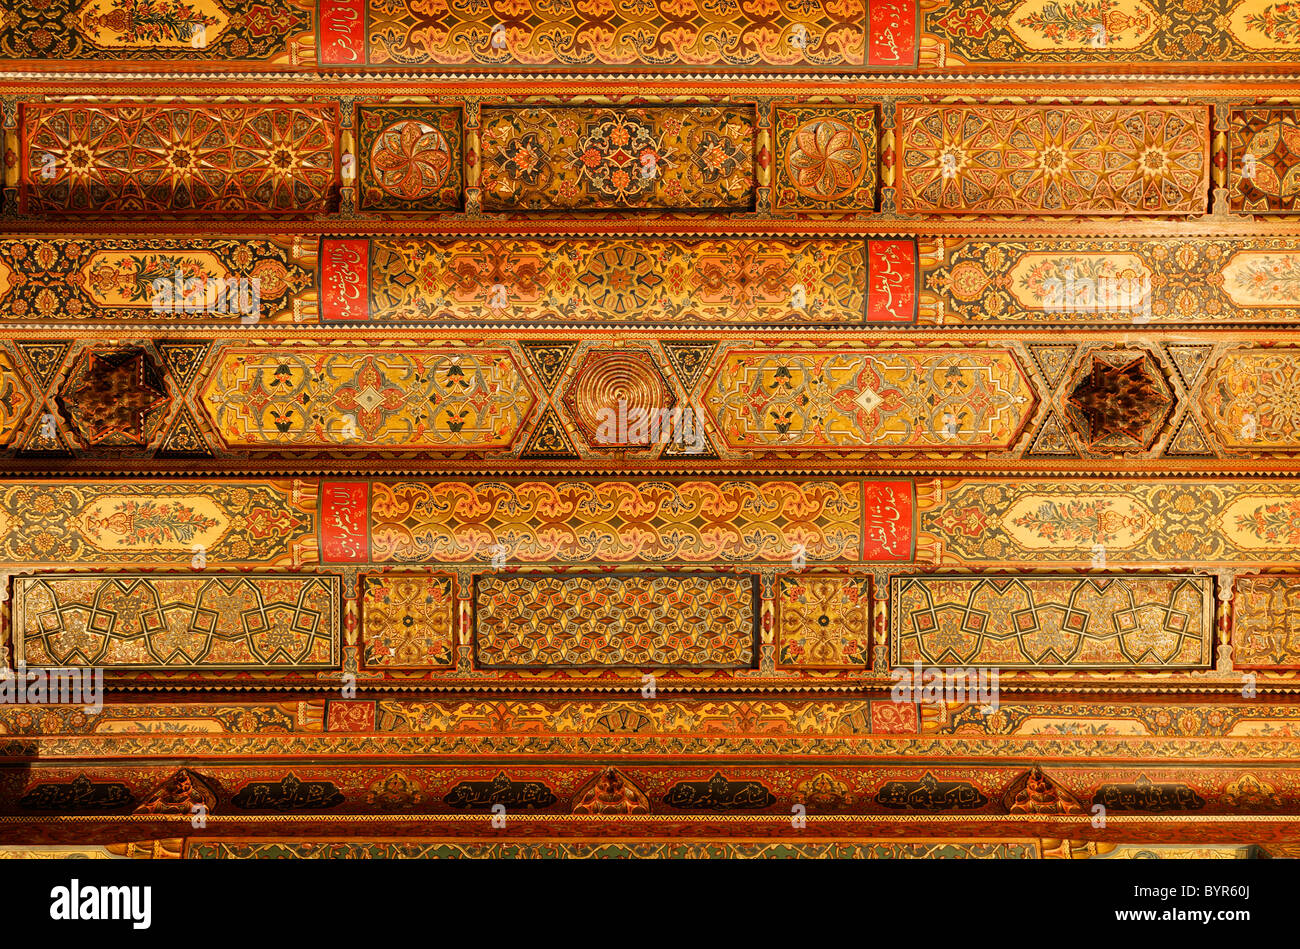 Ornate ceiling inside the gatehouse of the Citadel of Aleppo, Syria - Stock Image